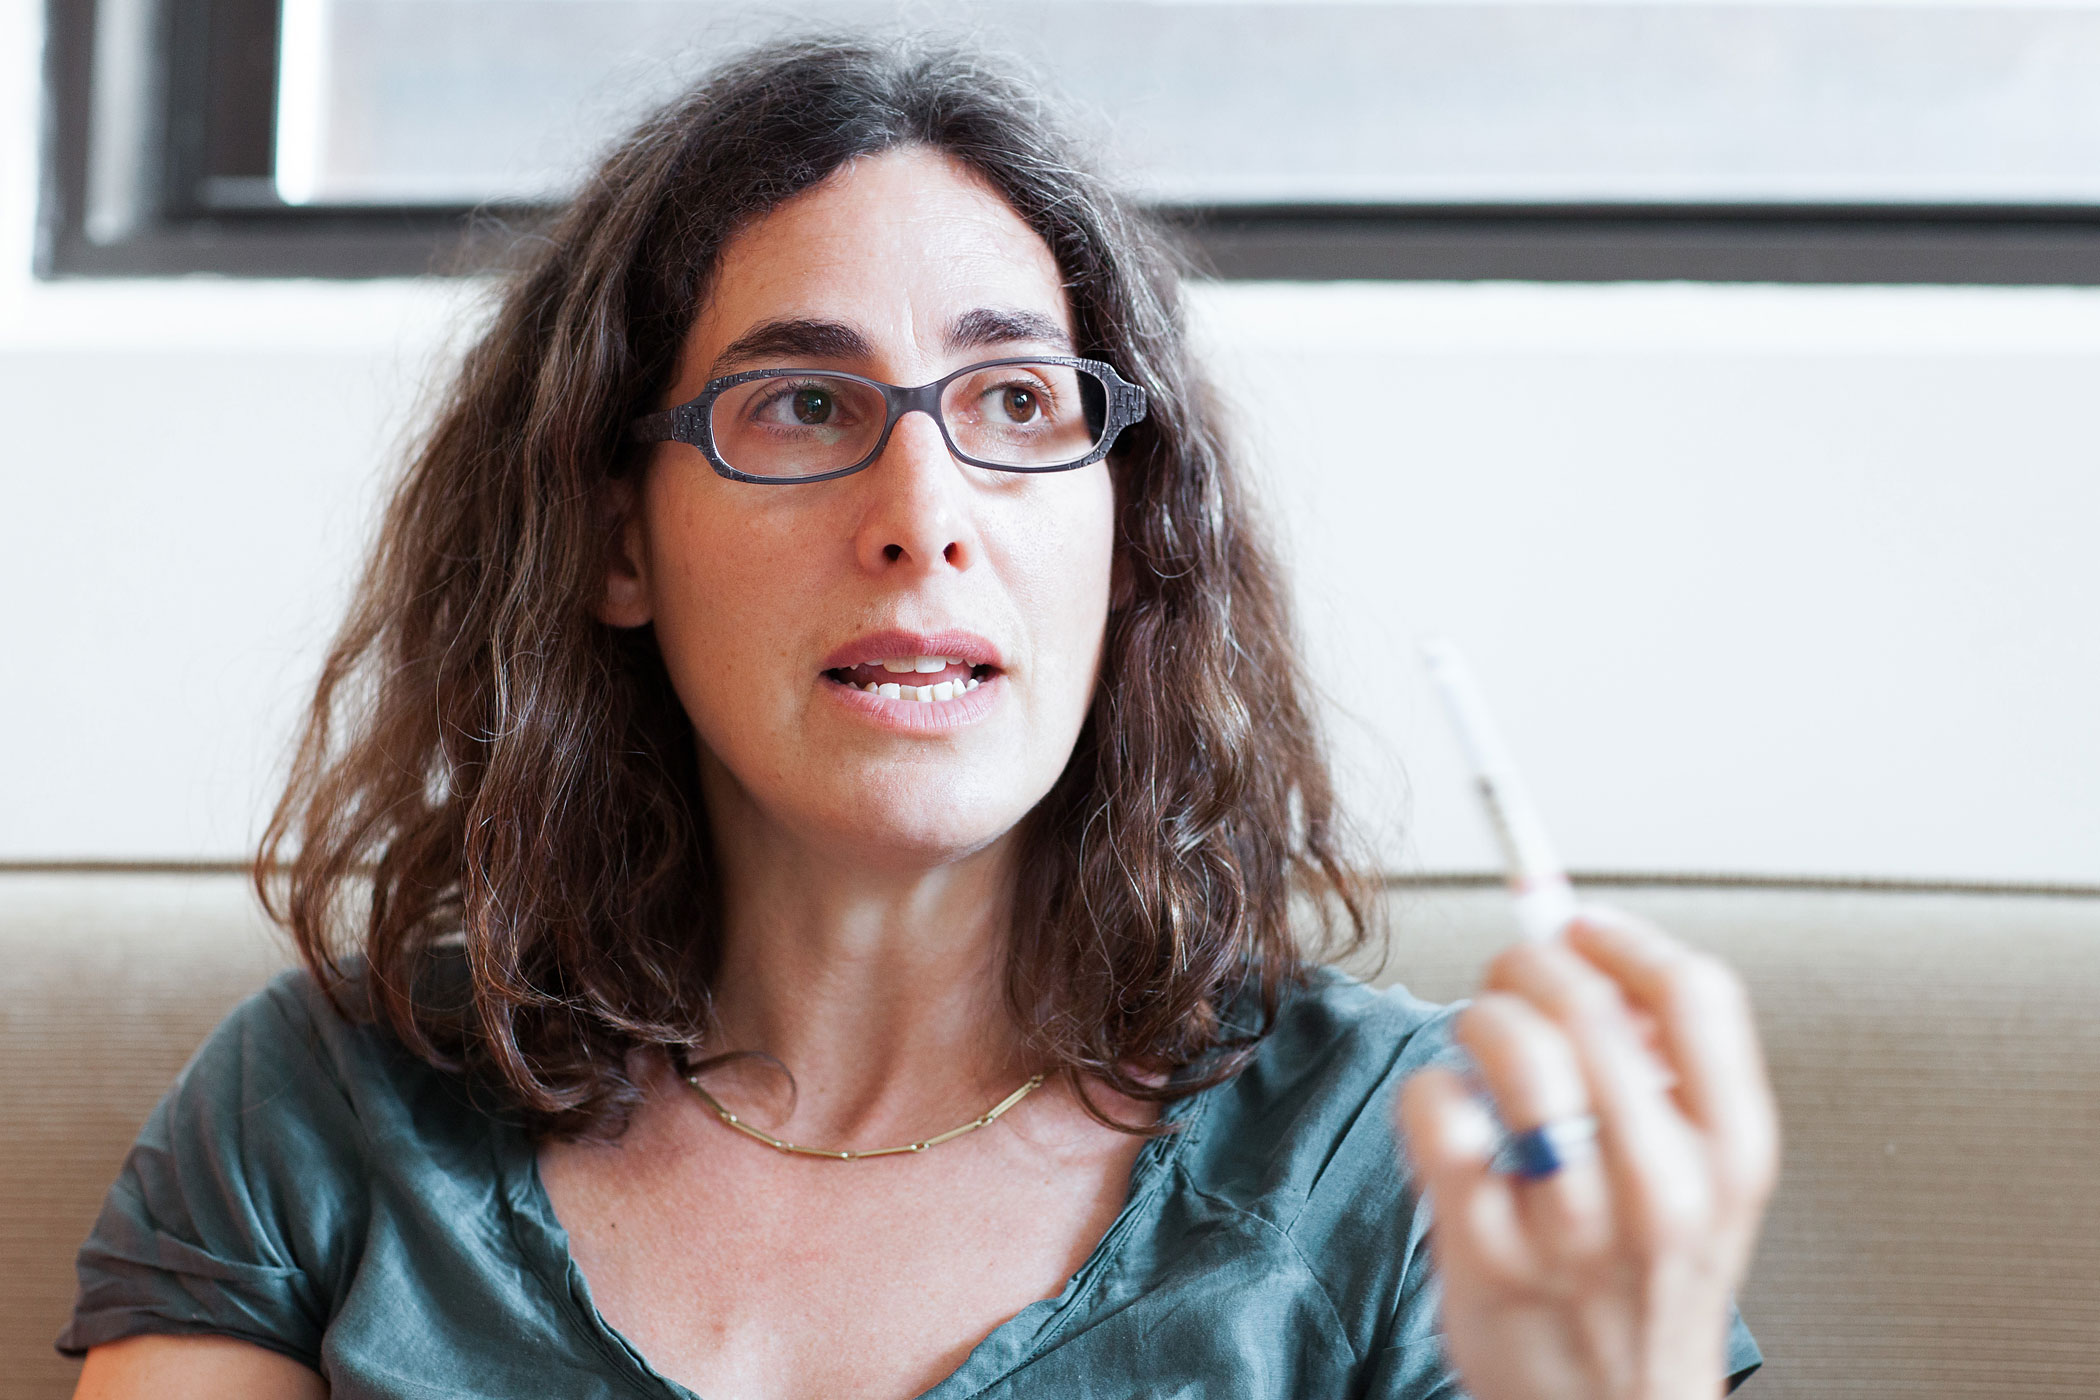 Sarah Koenig, host and executive producer of Serial